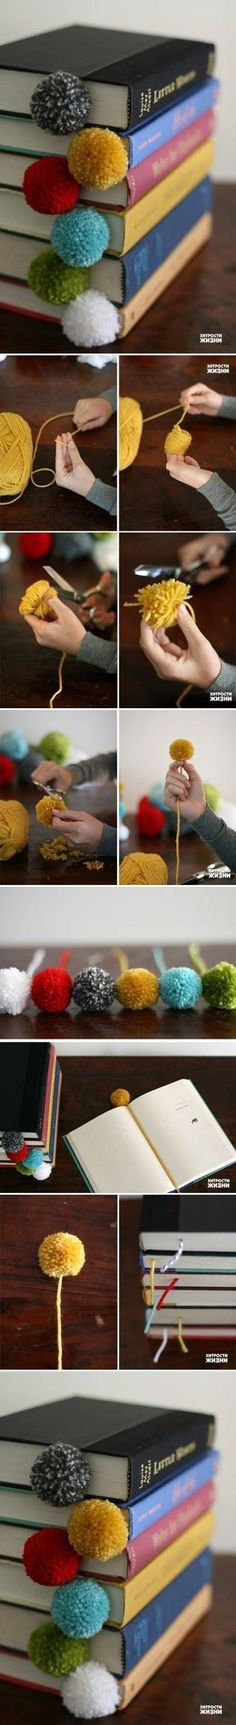 DIY Fancy Pom Poms Bookmark DIY Projects / UsefulDIY.com